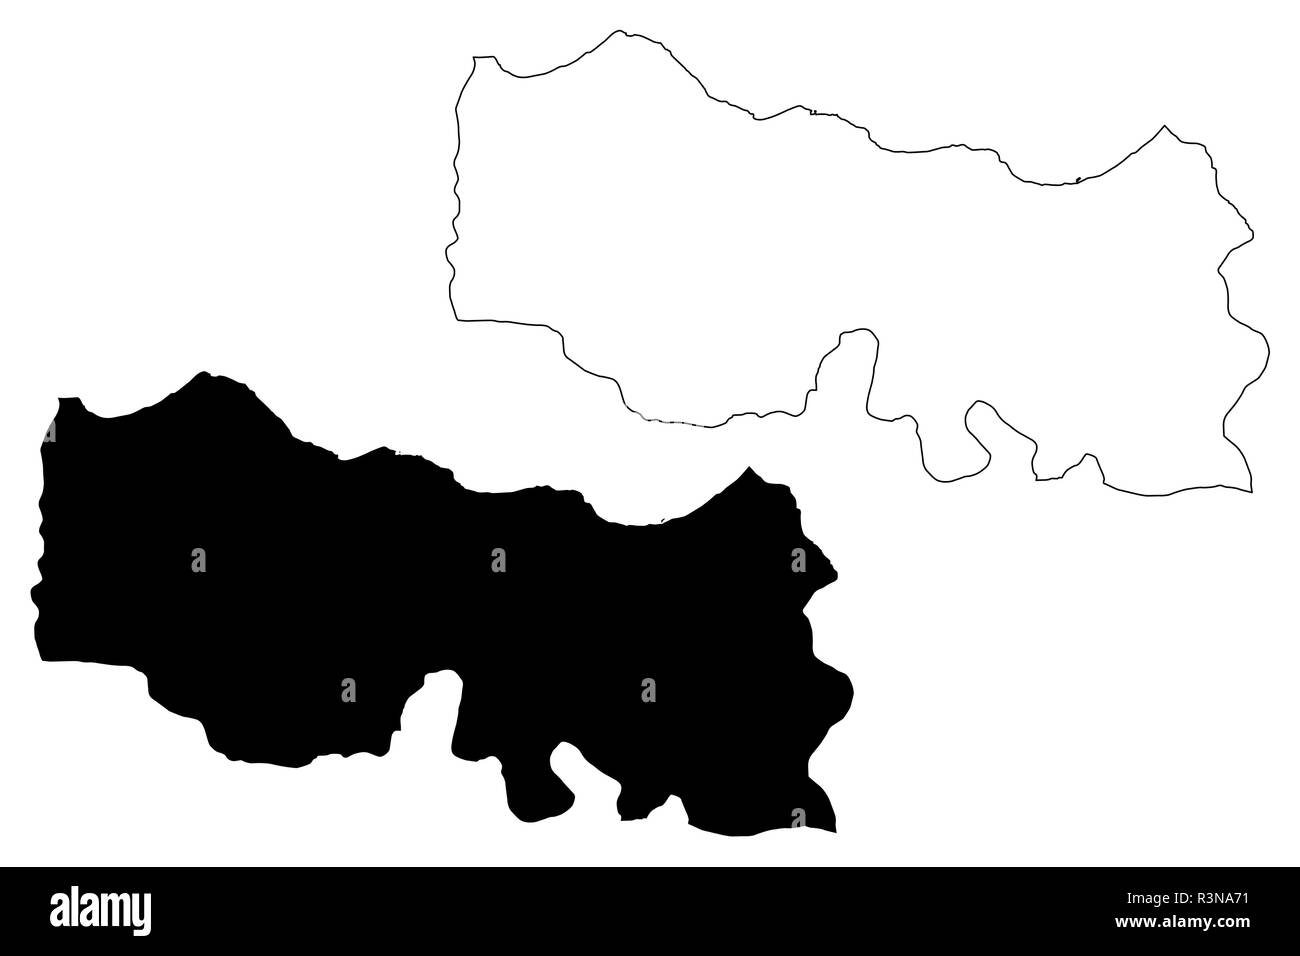 Trabzon (Provinces of the Republic of Turkey) map vector illustration, scribble sketch Trabzon ili map - Stock Image